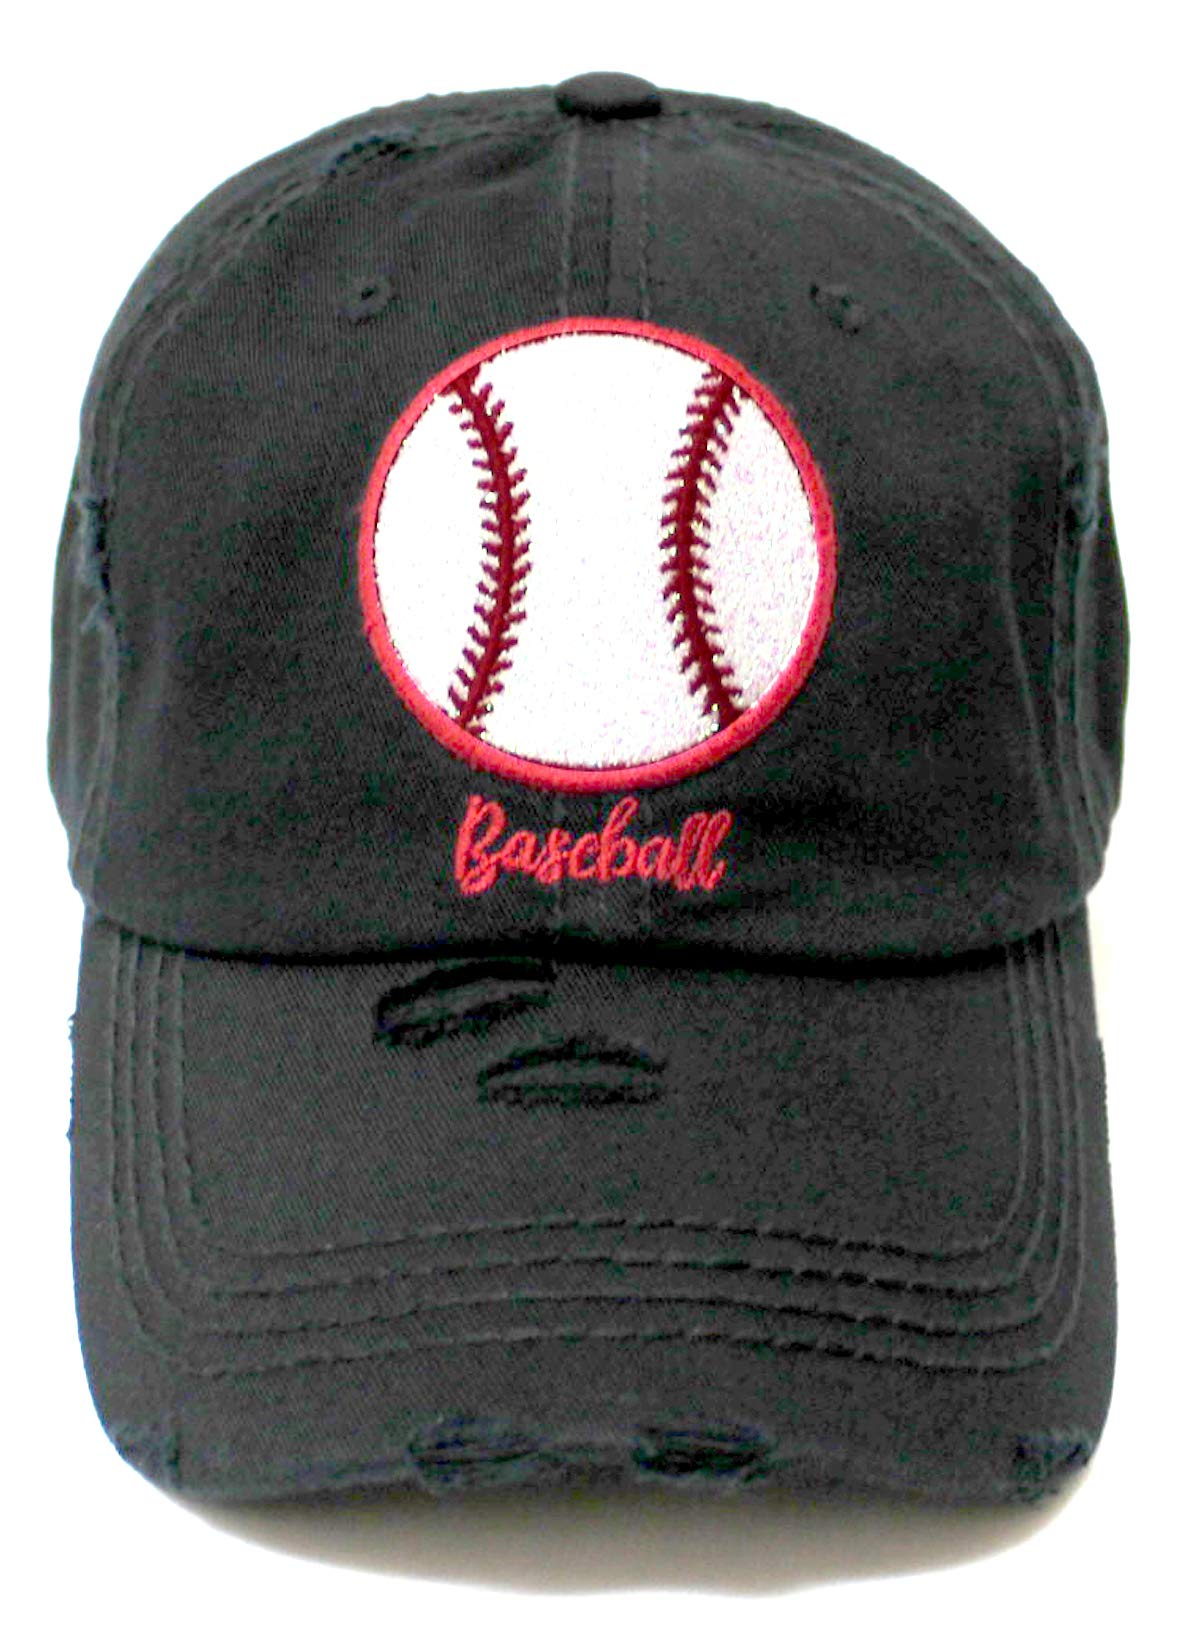 Distressed Baseball Hat Sparkle Ball Embroidery Baseball Monogram Vintage Hat, Pitch Black - Caps 'N Vintage